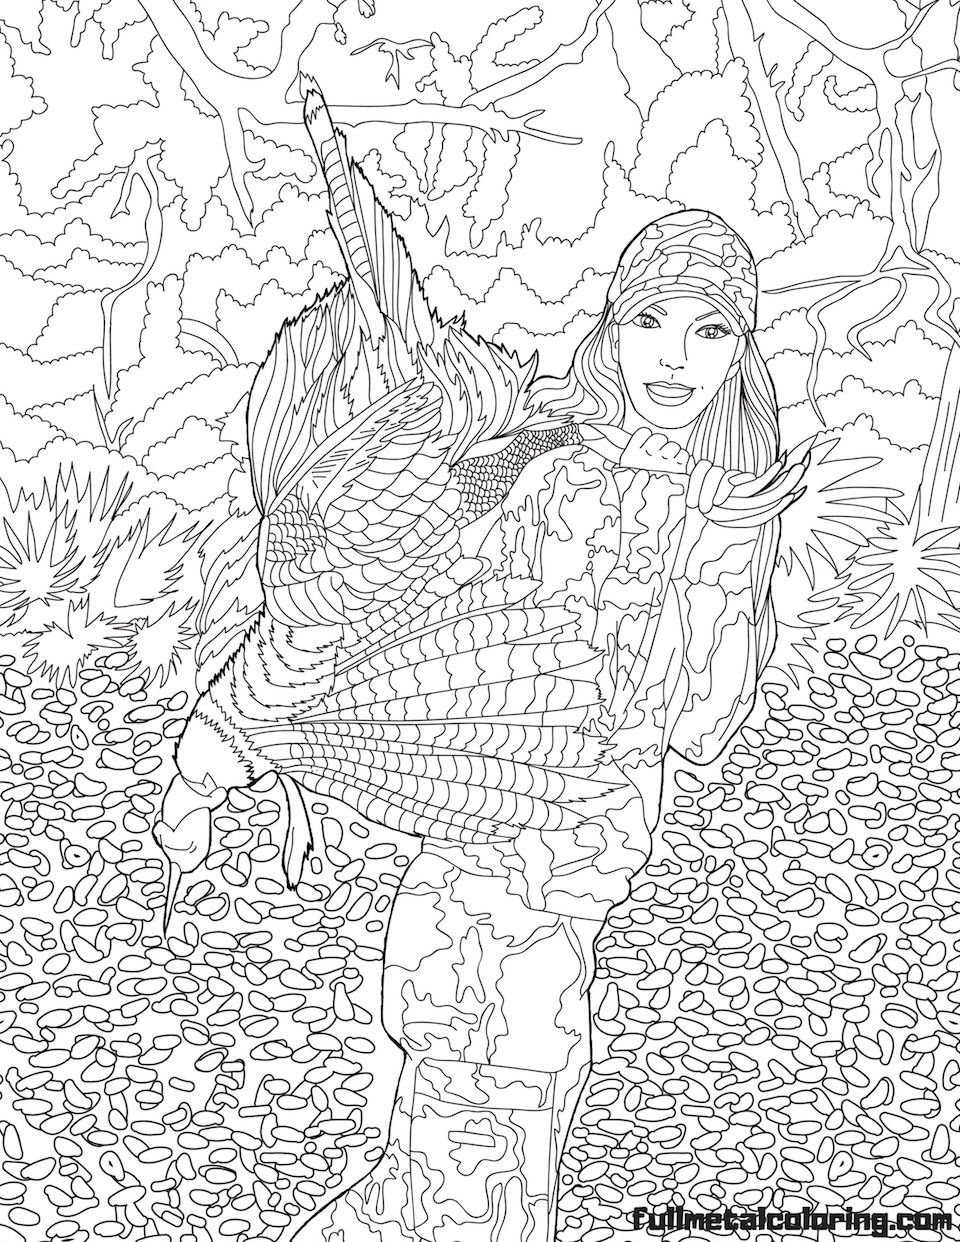 Free Free Kids Hunting Coloring Page, Download Free Clip Art, Free ... | 1242x960